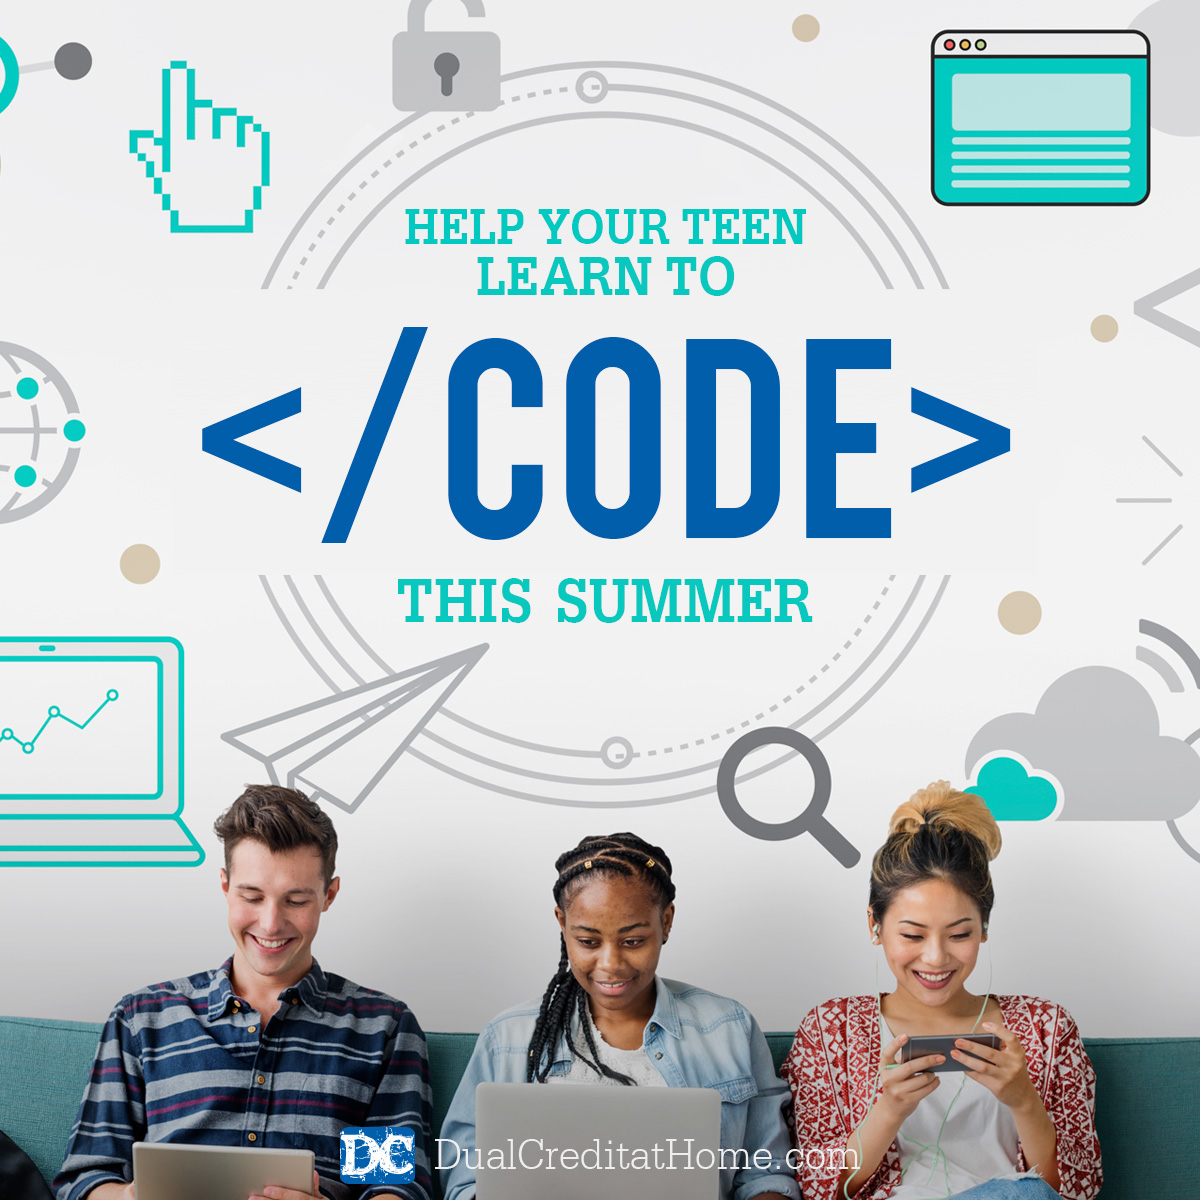 Help Your Teen Learn to Code this Summer